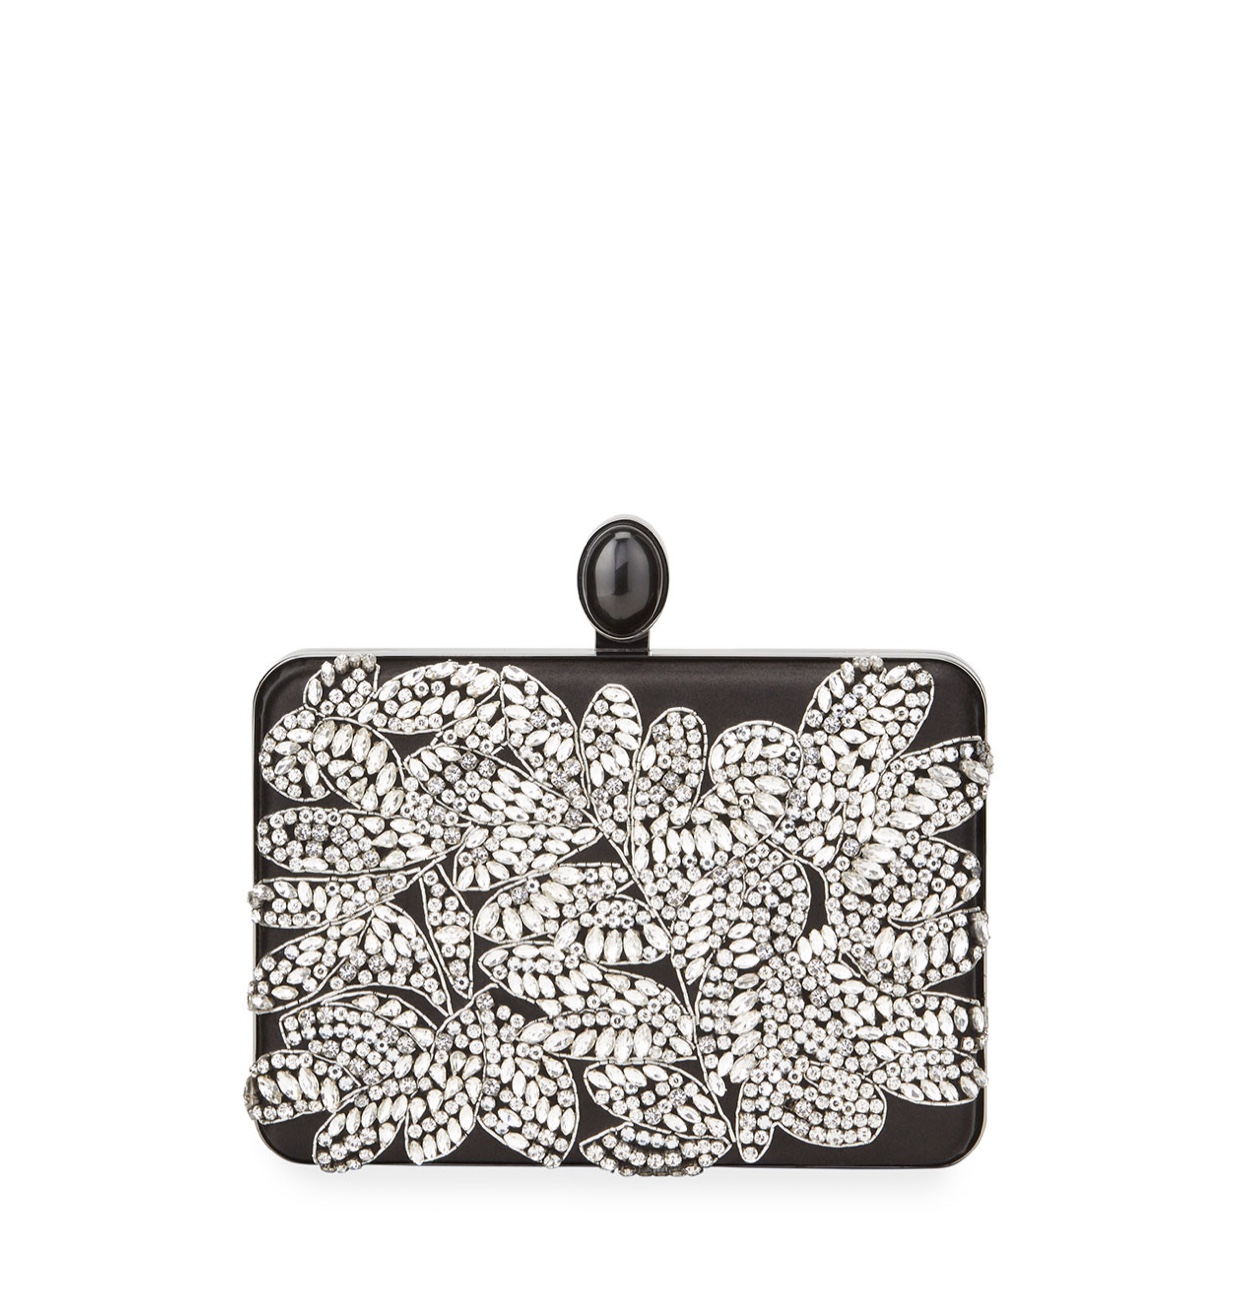 OSCAR DE LA RENTA Embellished Satin Box Clutch Bag